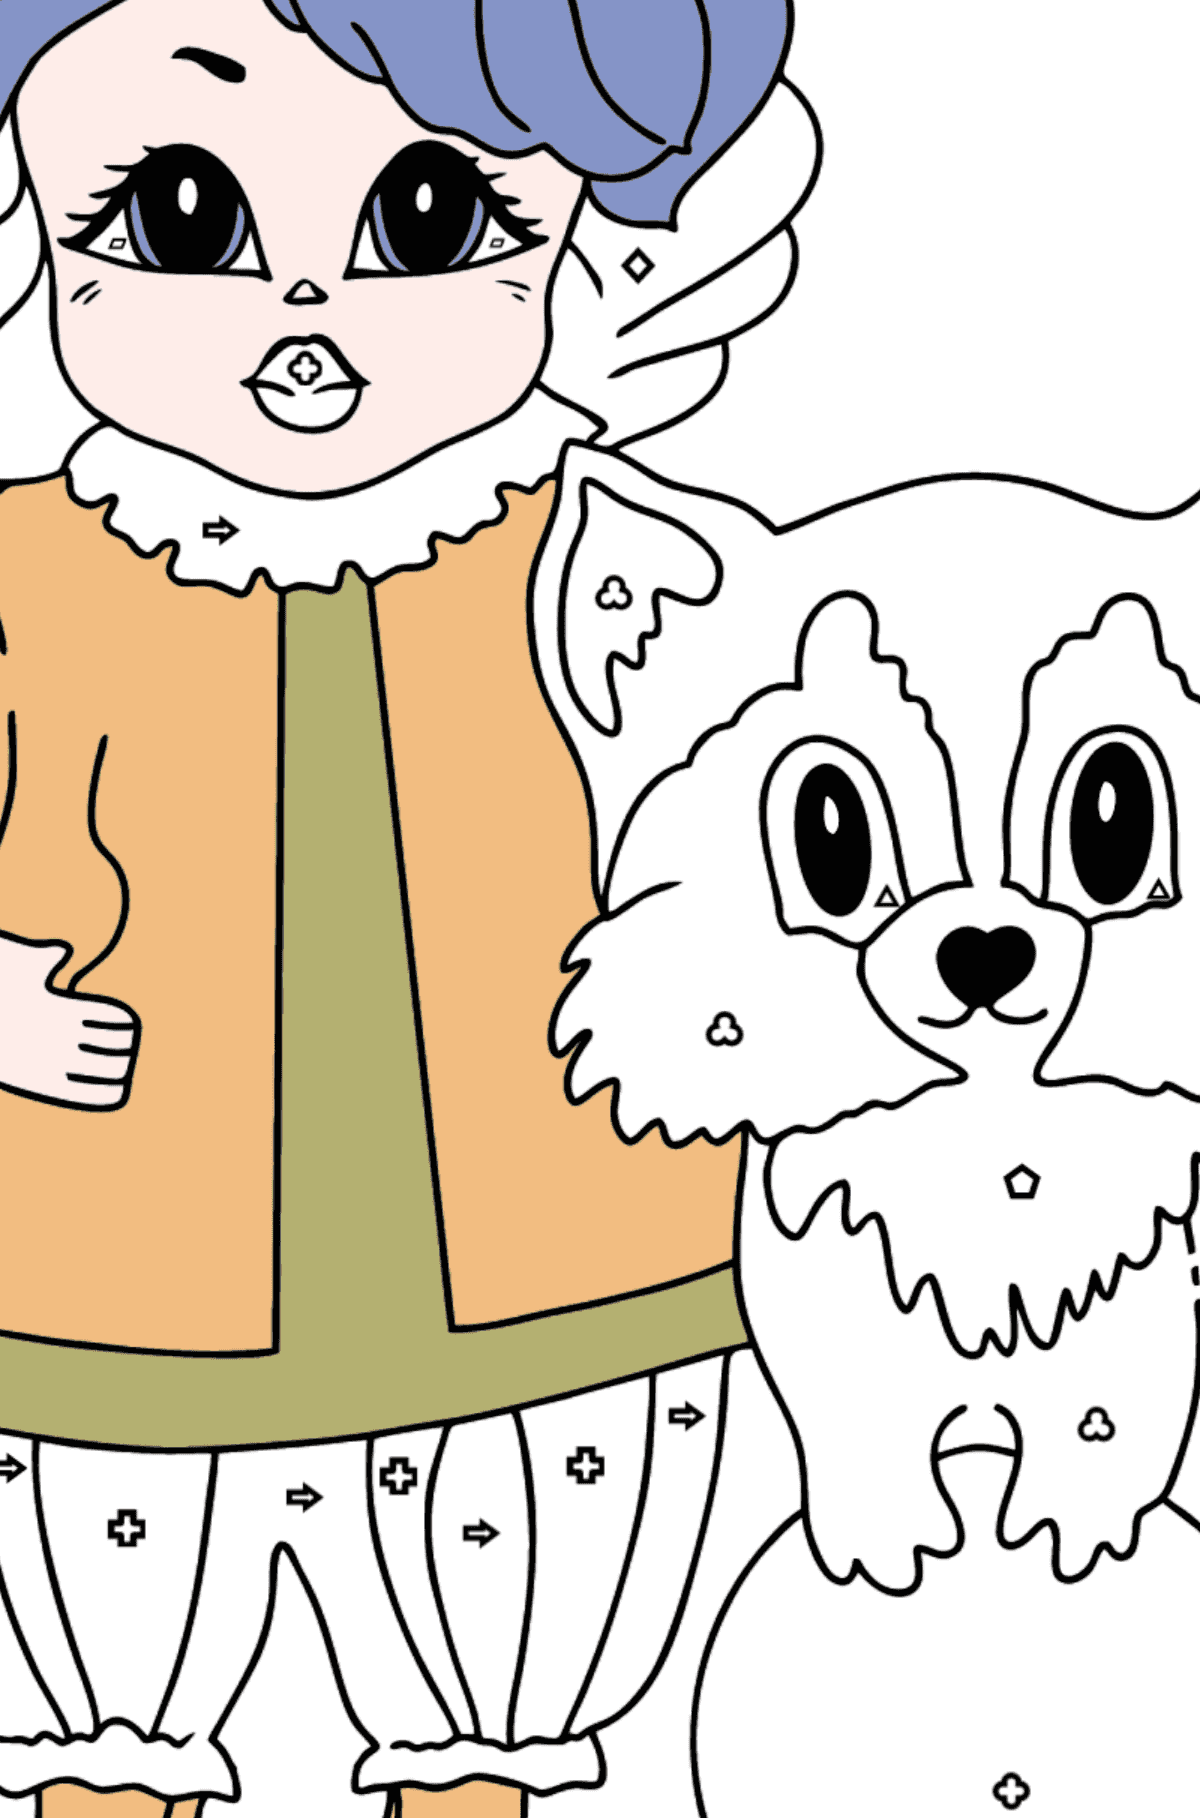 Coloring Page - A Princess with a Cat and a Racoon - Coloring by Geometric Shapes for Kids